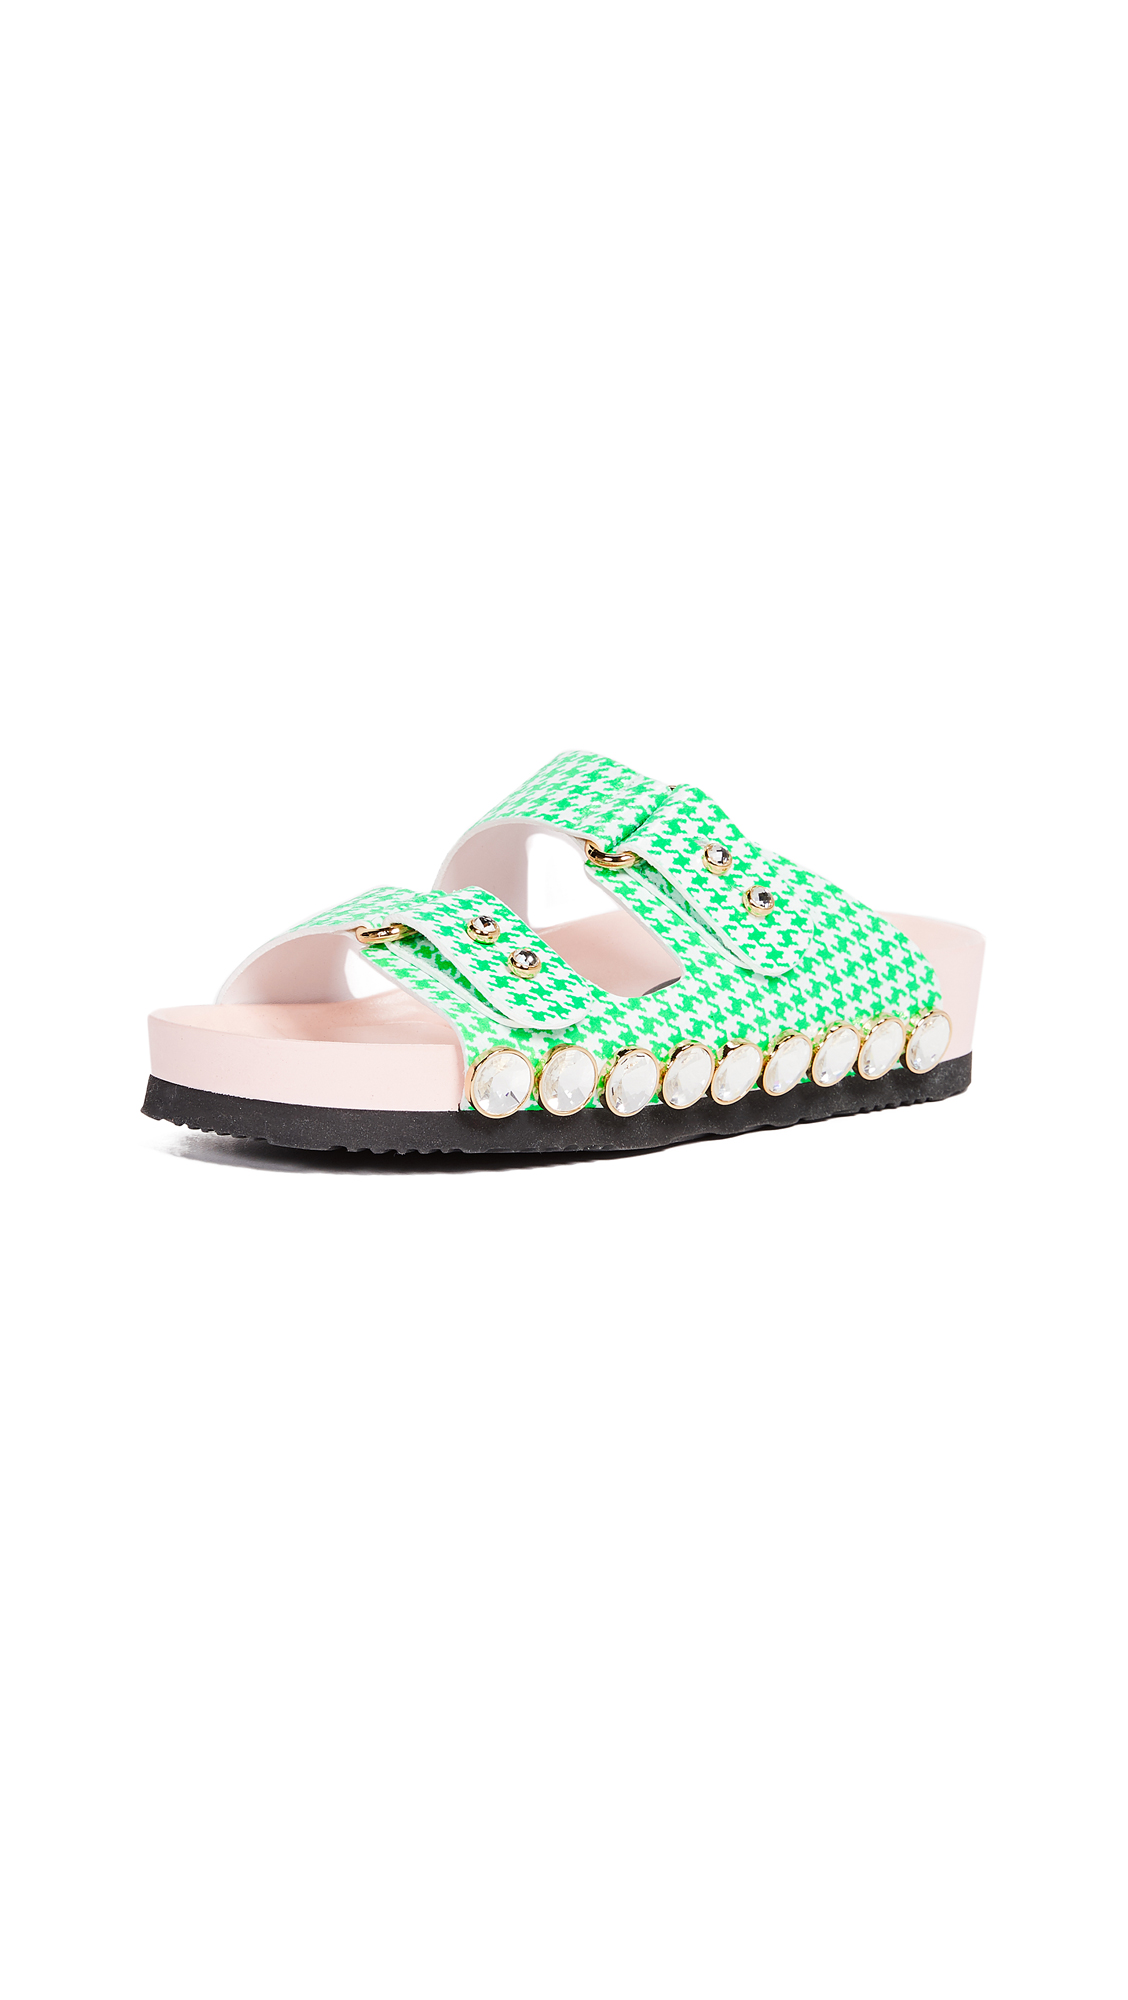 Suecomma Bonnie Imitation Pearl Detailed Slides In Green